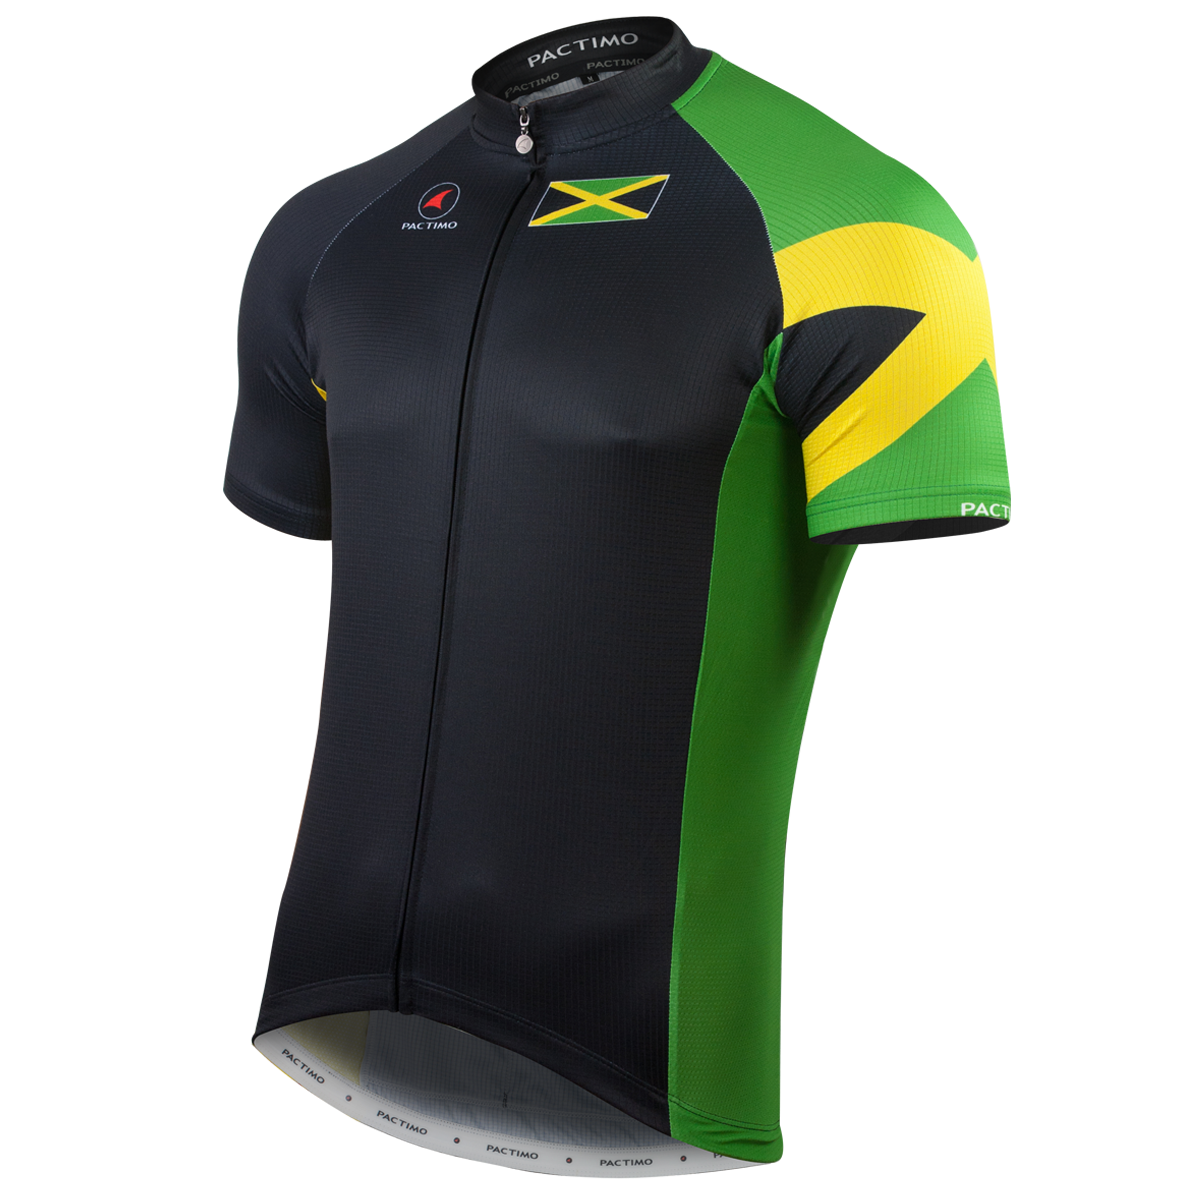 bc017d66b Jamaica Cycling Jersey - Men s